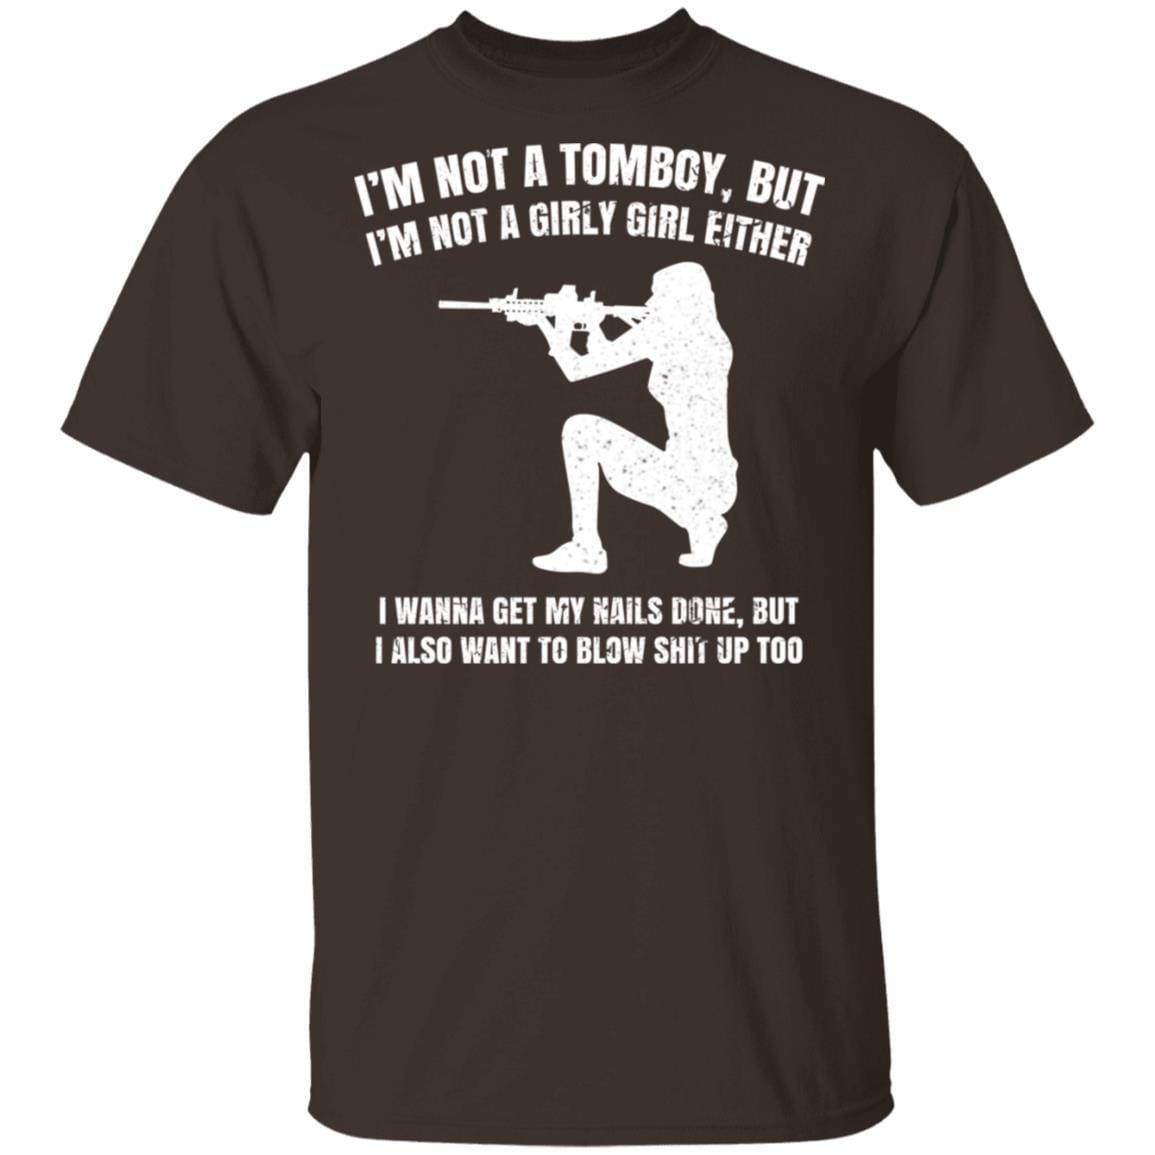 I'm Not A Tomboy But I'm Not A Girly Girl Either T-Shirts, Hoodies 1049-9956-87589181-48152 - Tee Ript